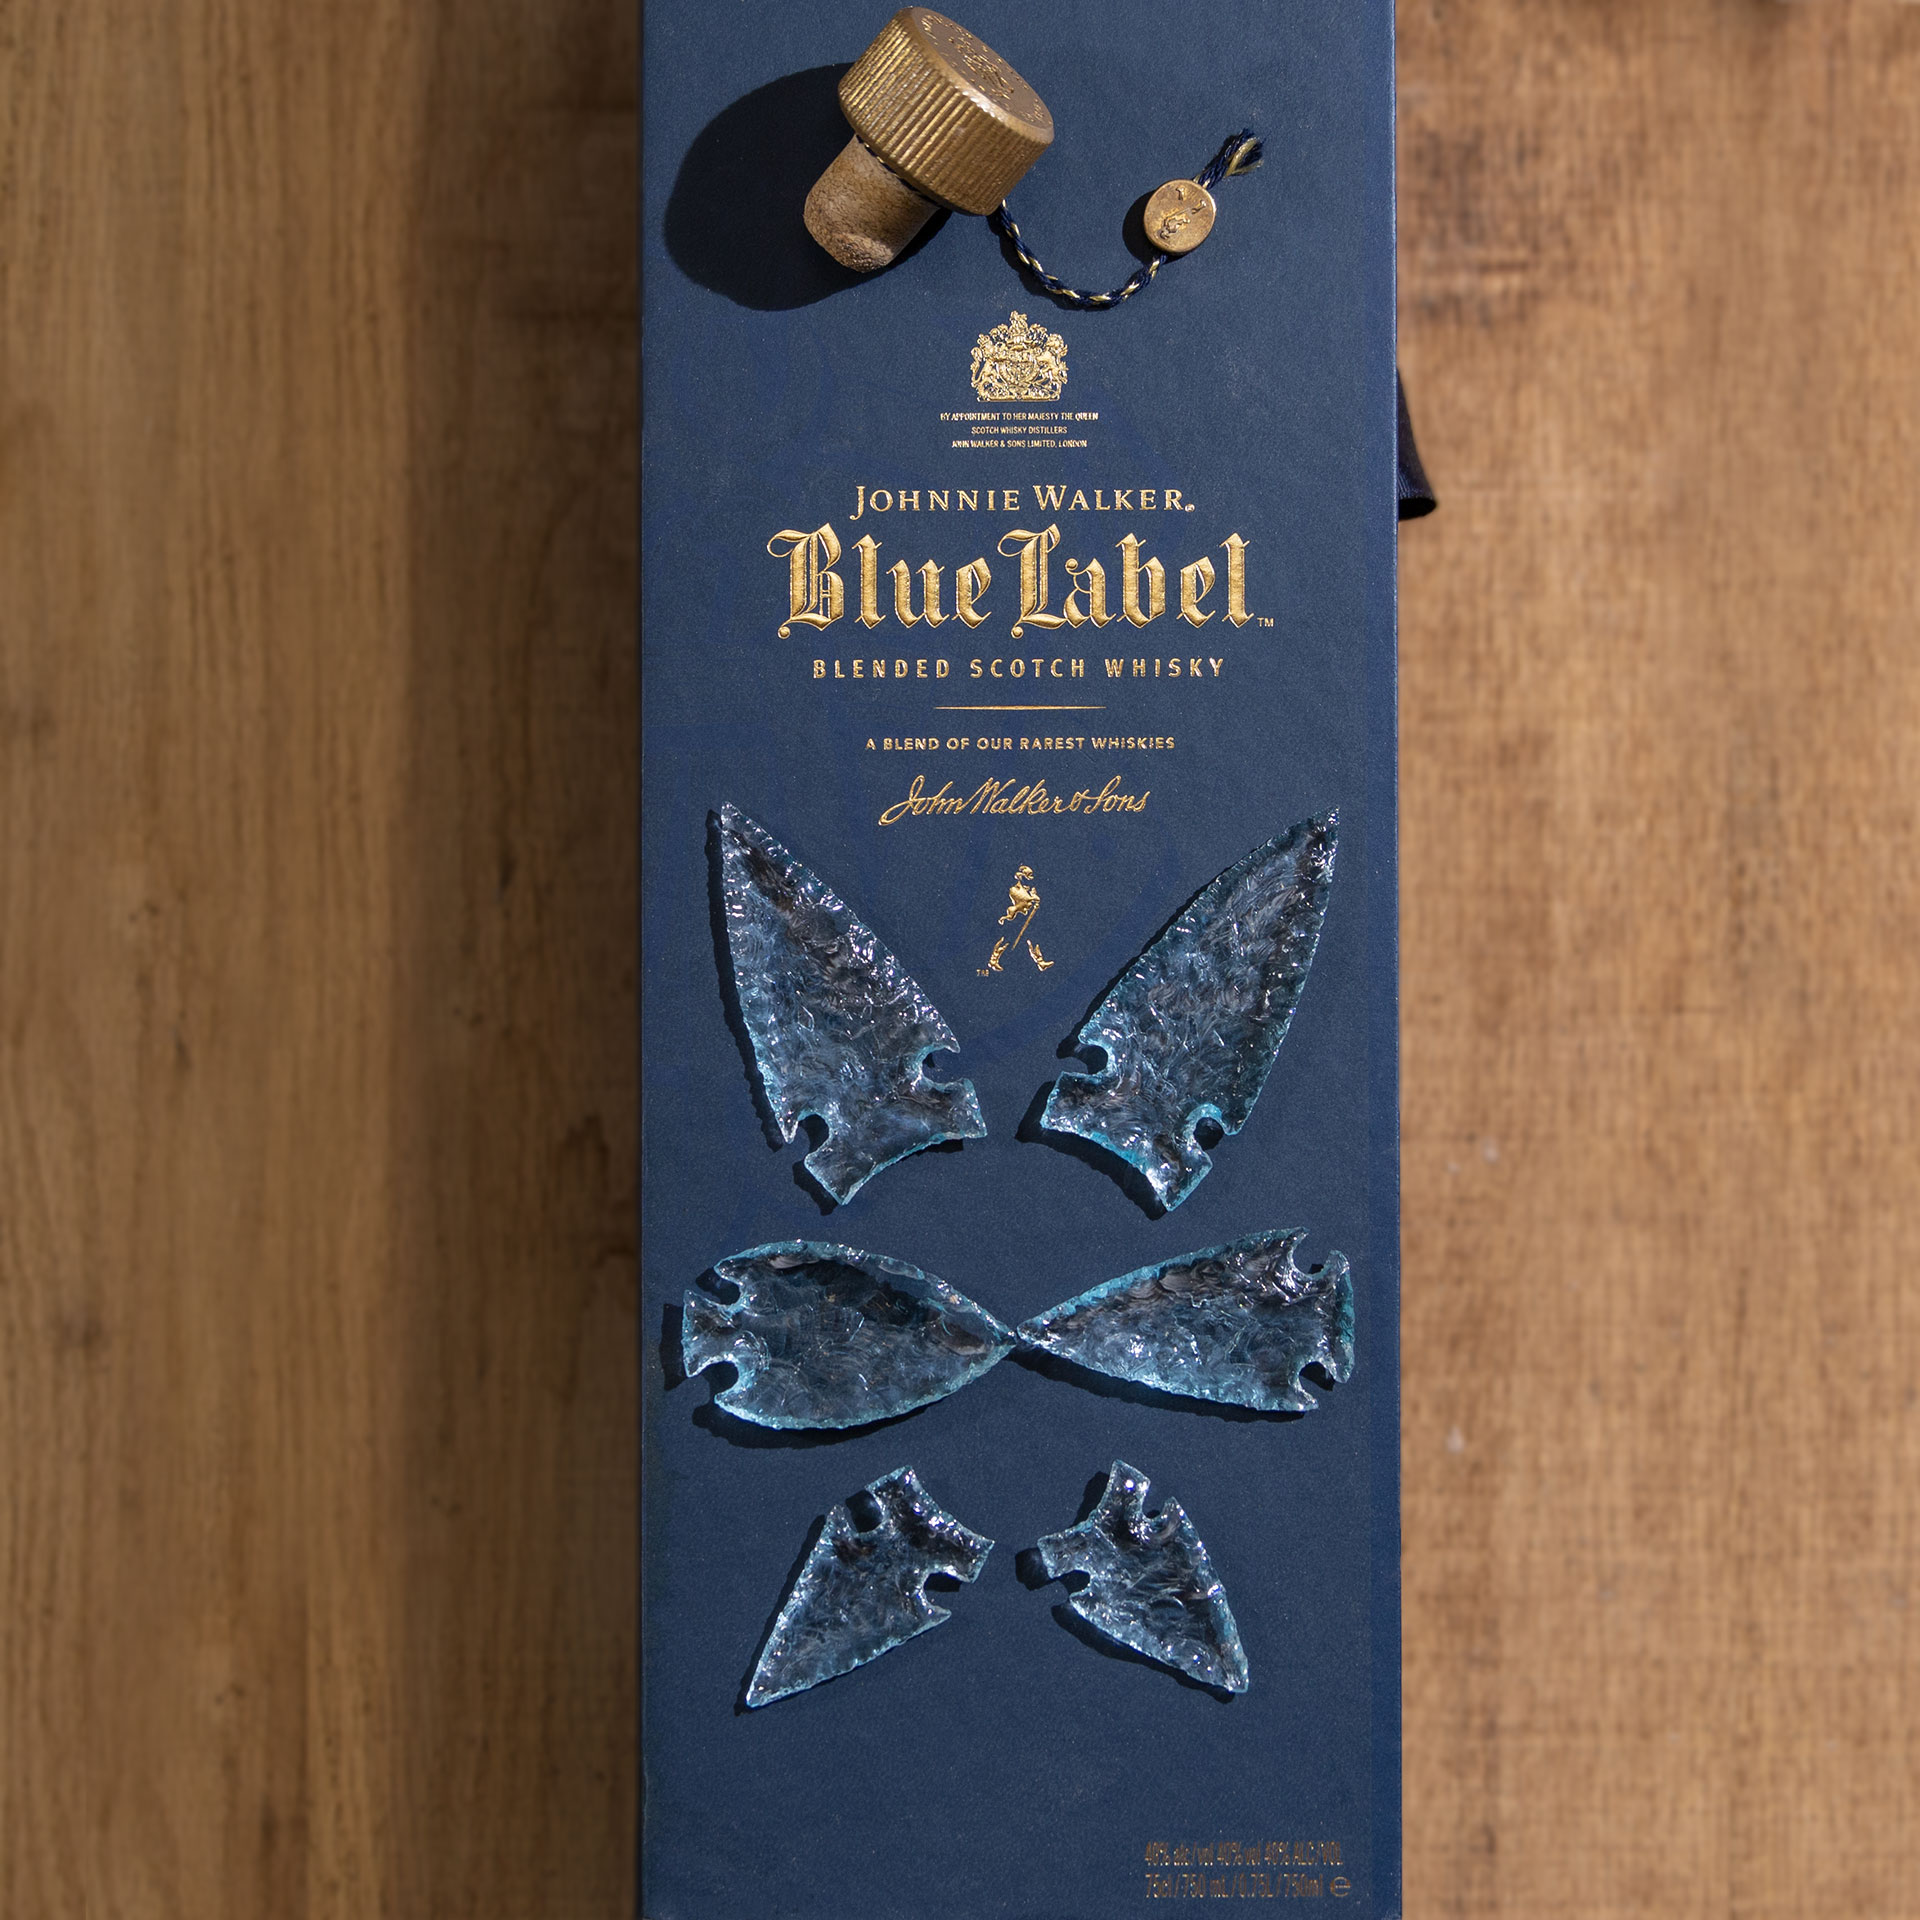 The arrowheads David made from a bottle of Johnnie Walker Blue Label Blended Scotch Whisky